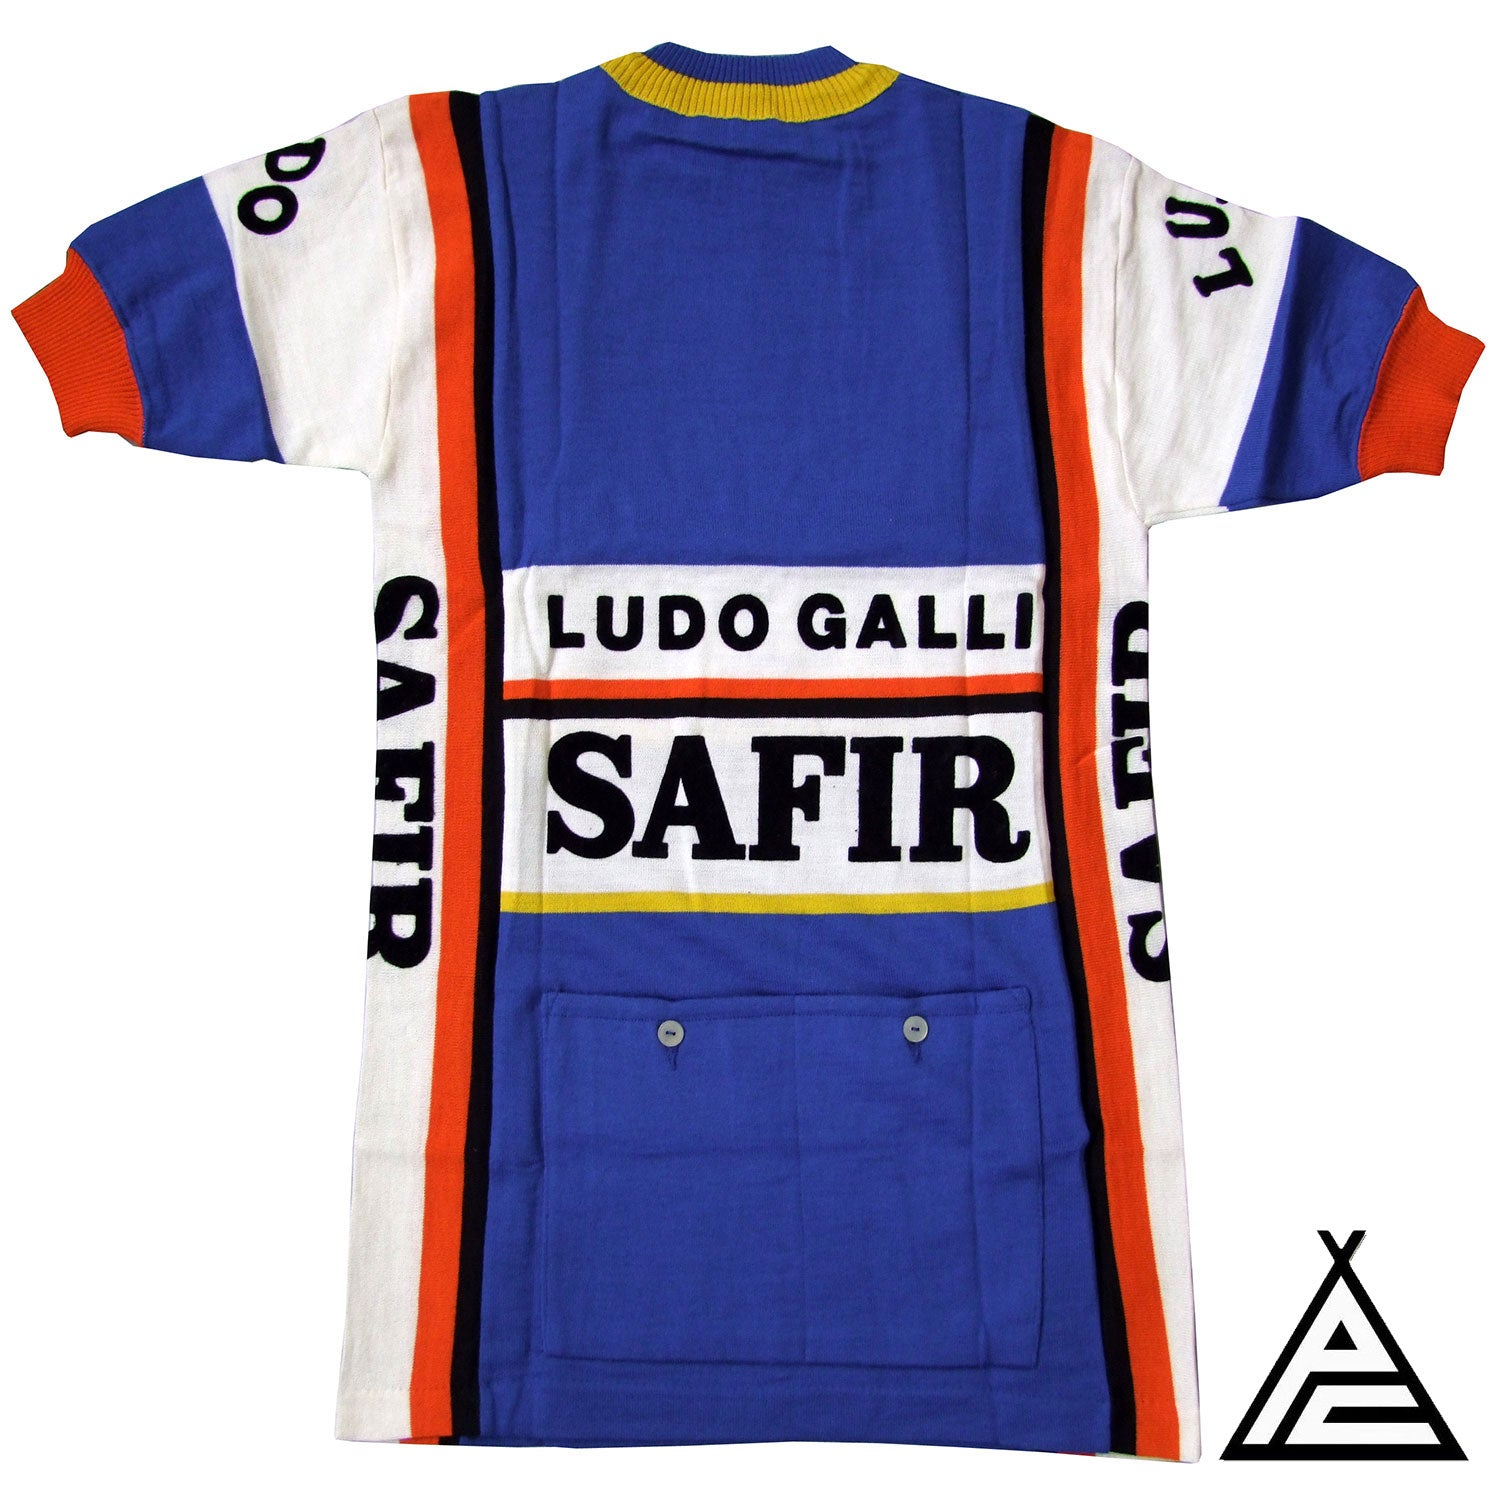 The back of the 1981 Safir Ludo Galli team jersey